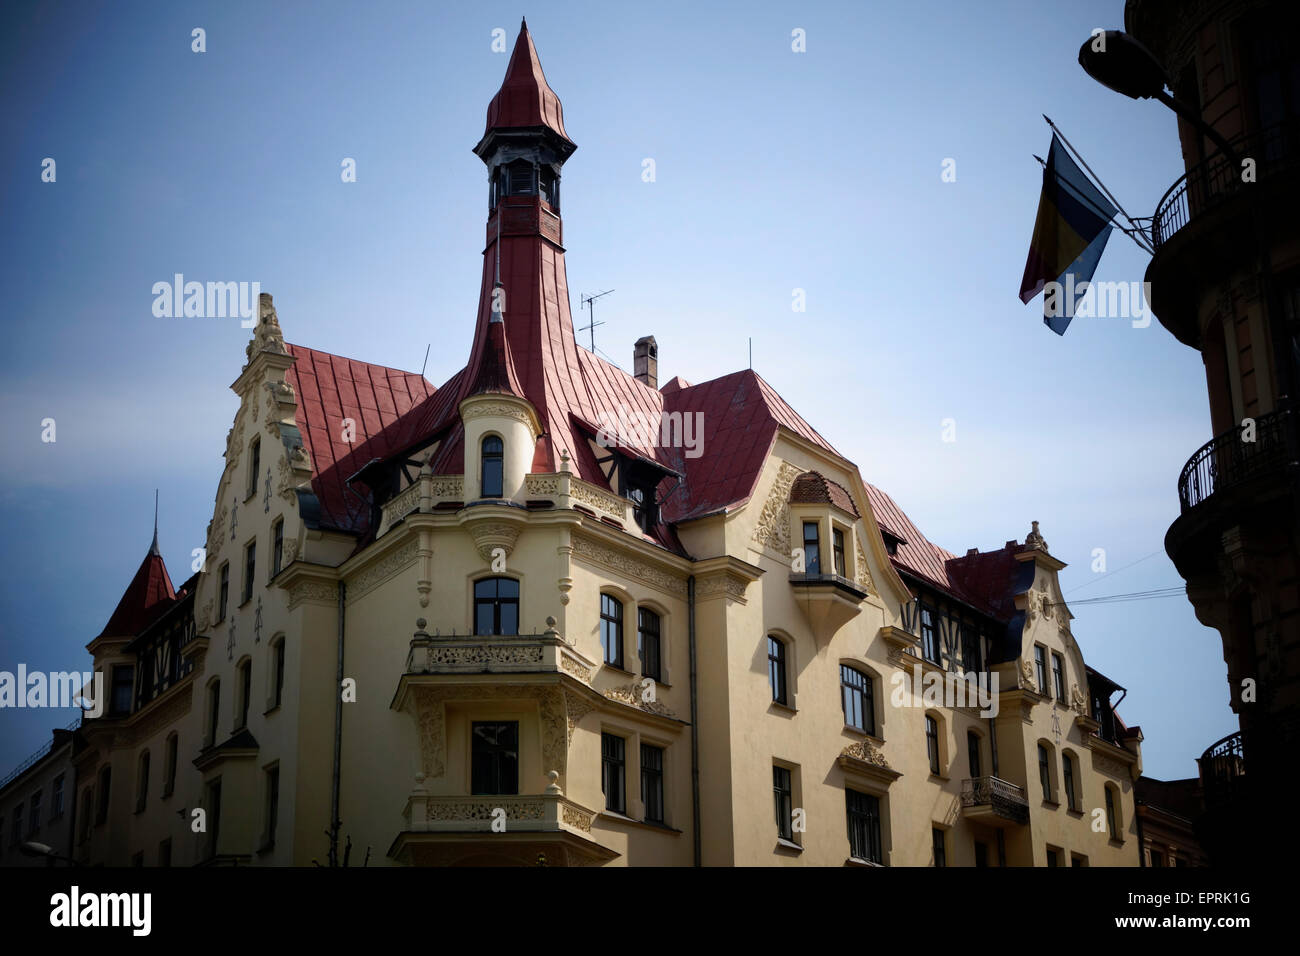 Old mansion in Albert Street ( Latvian: Alberta iela ) known for its Art Nouveau apartment buildings, many of them - Stock Image